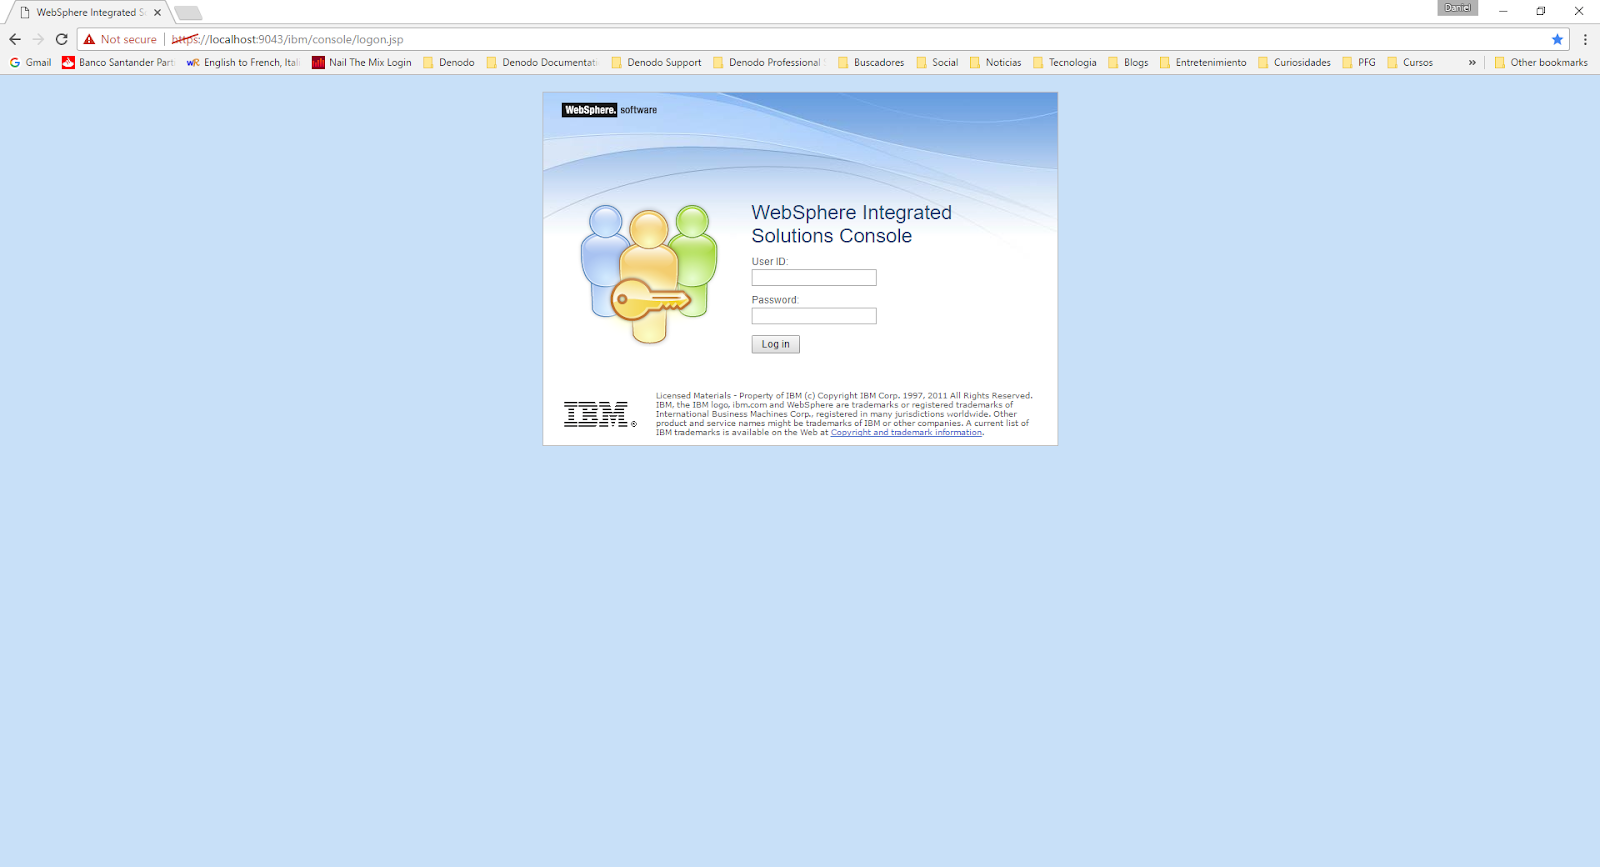 How to connect to Denodo Virtual DataPort from IBM Websphere